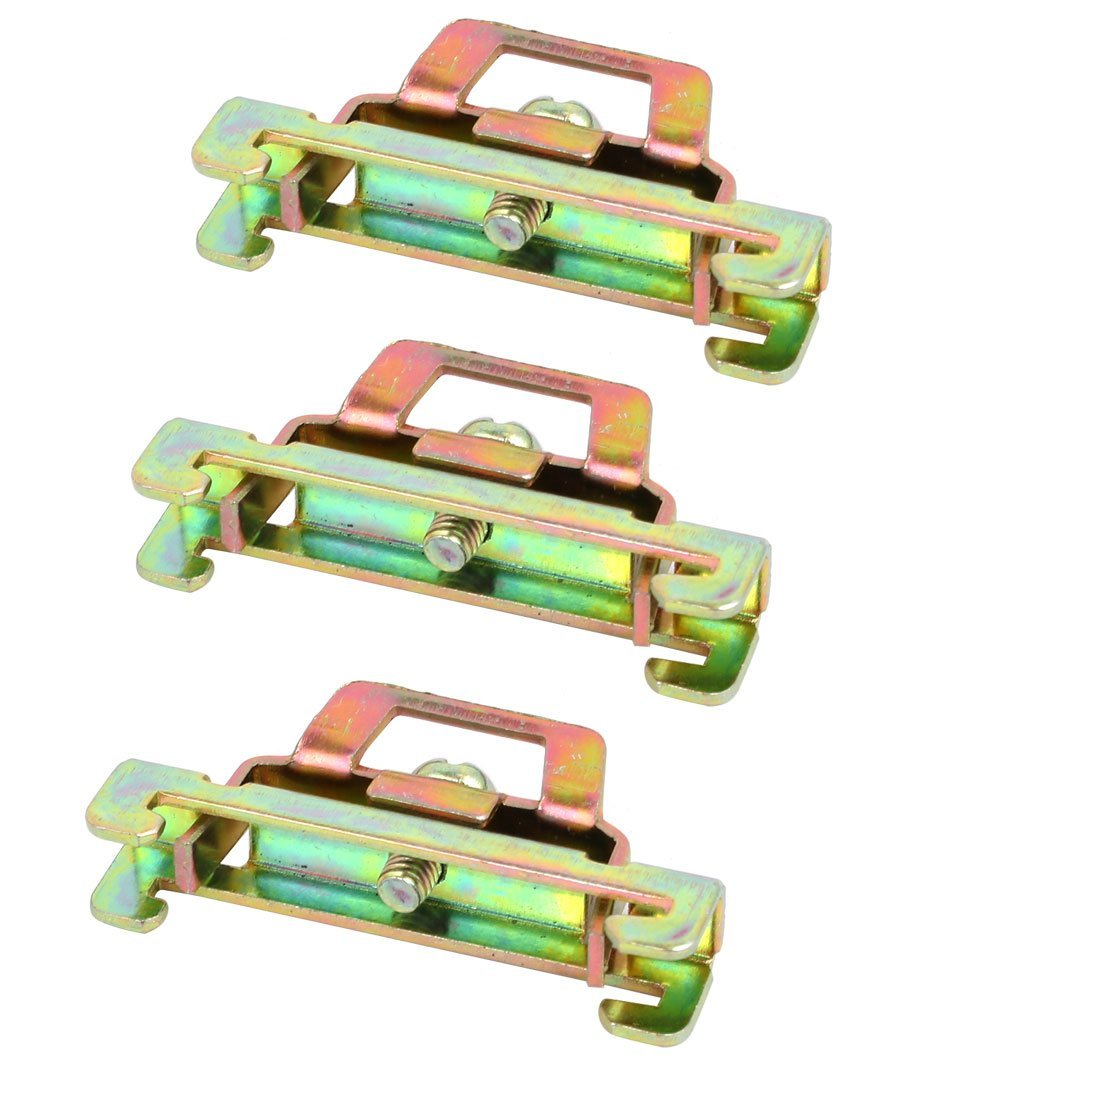 uxcell 3 Pcs 35mm Width BNL6 DIN Guide Rail Buckle Fixed Clamp Bronze Tone 44x8x22mm